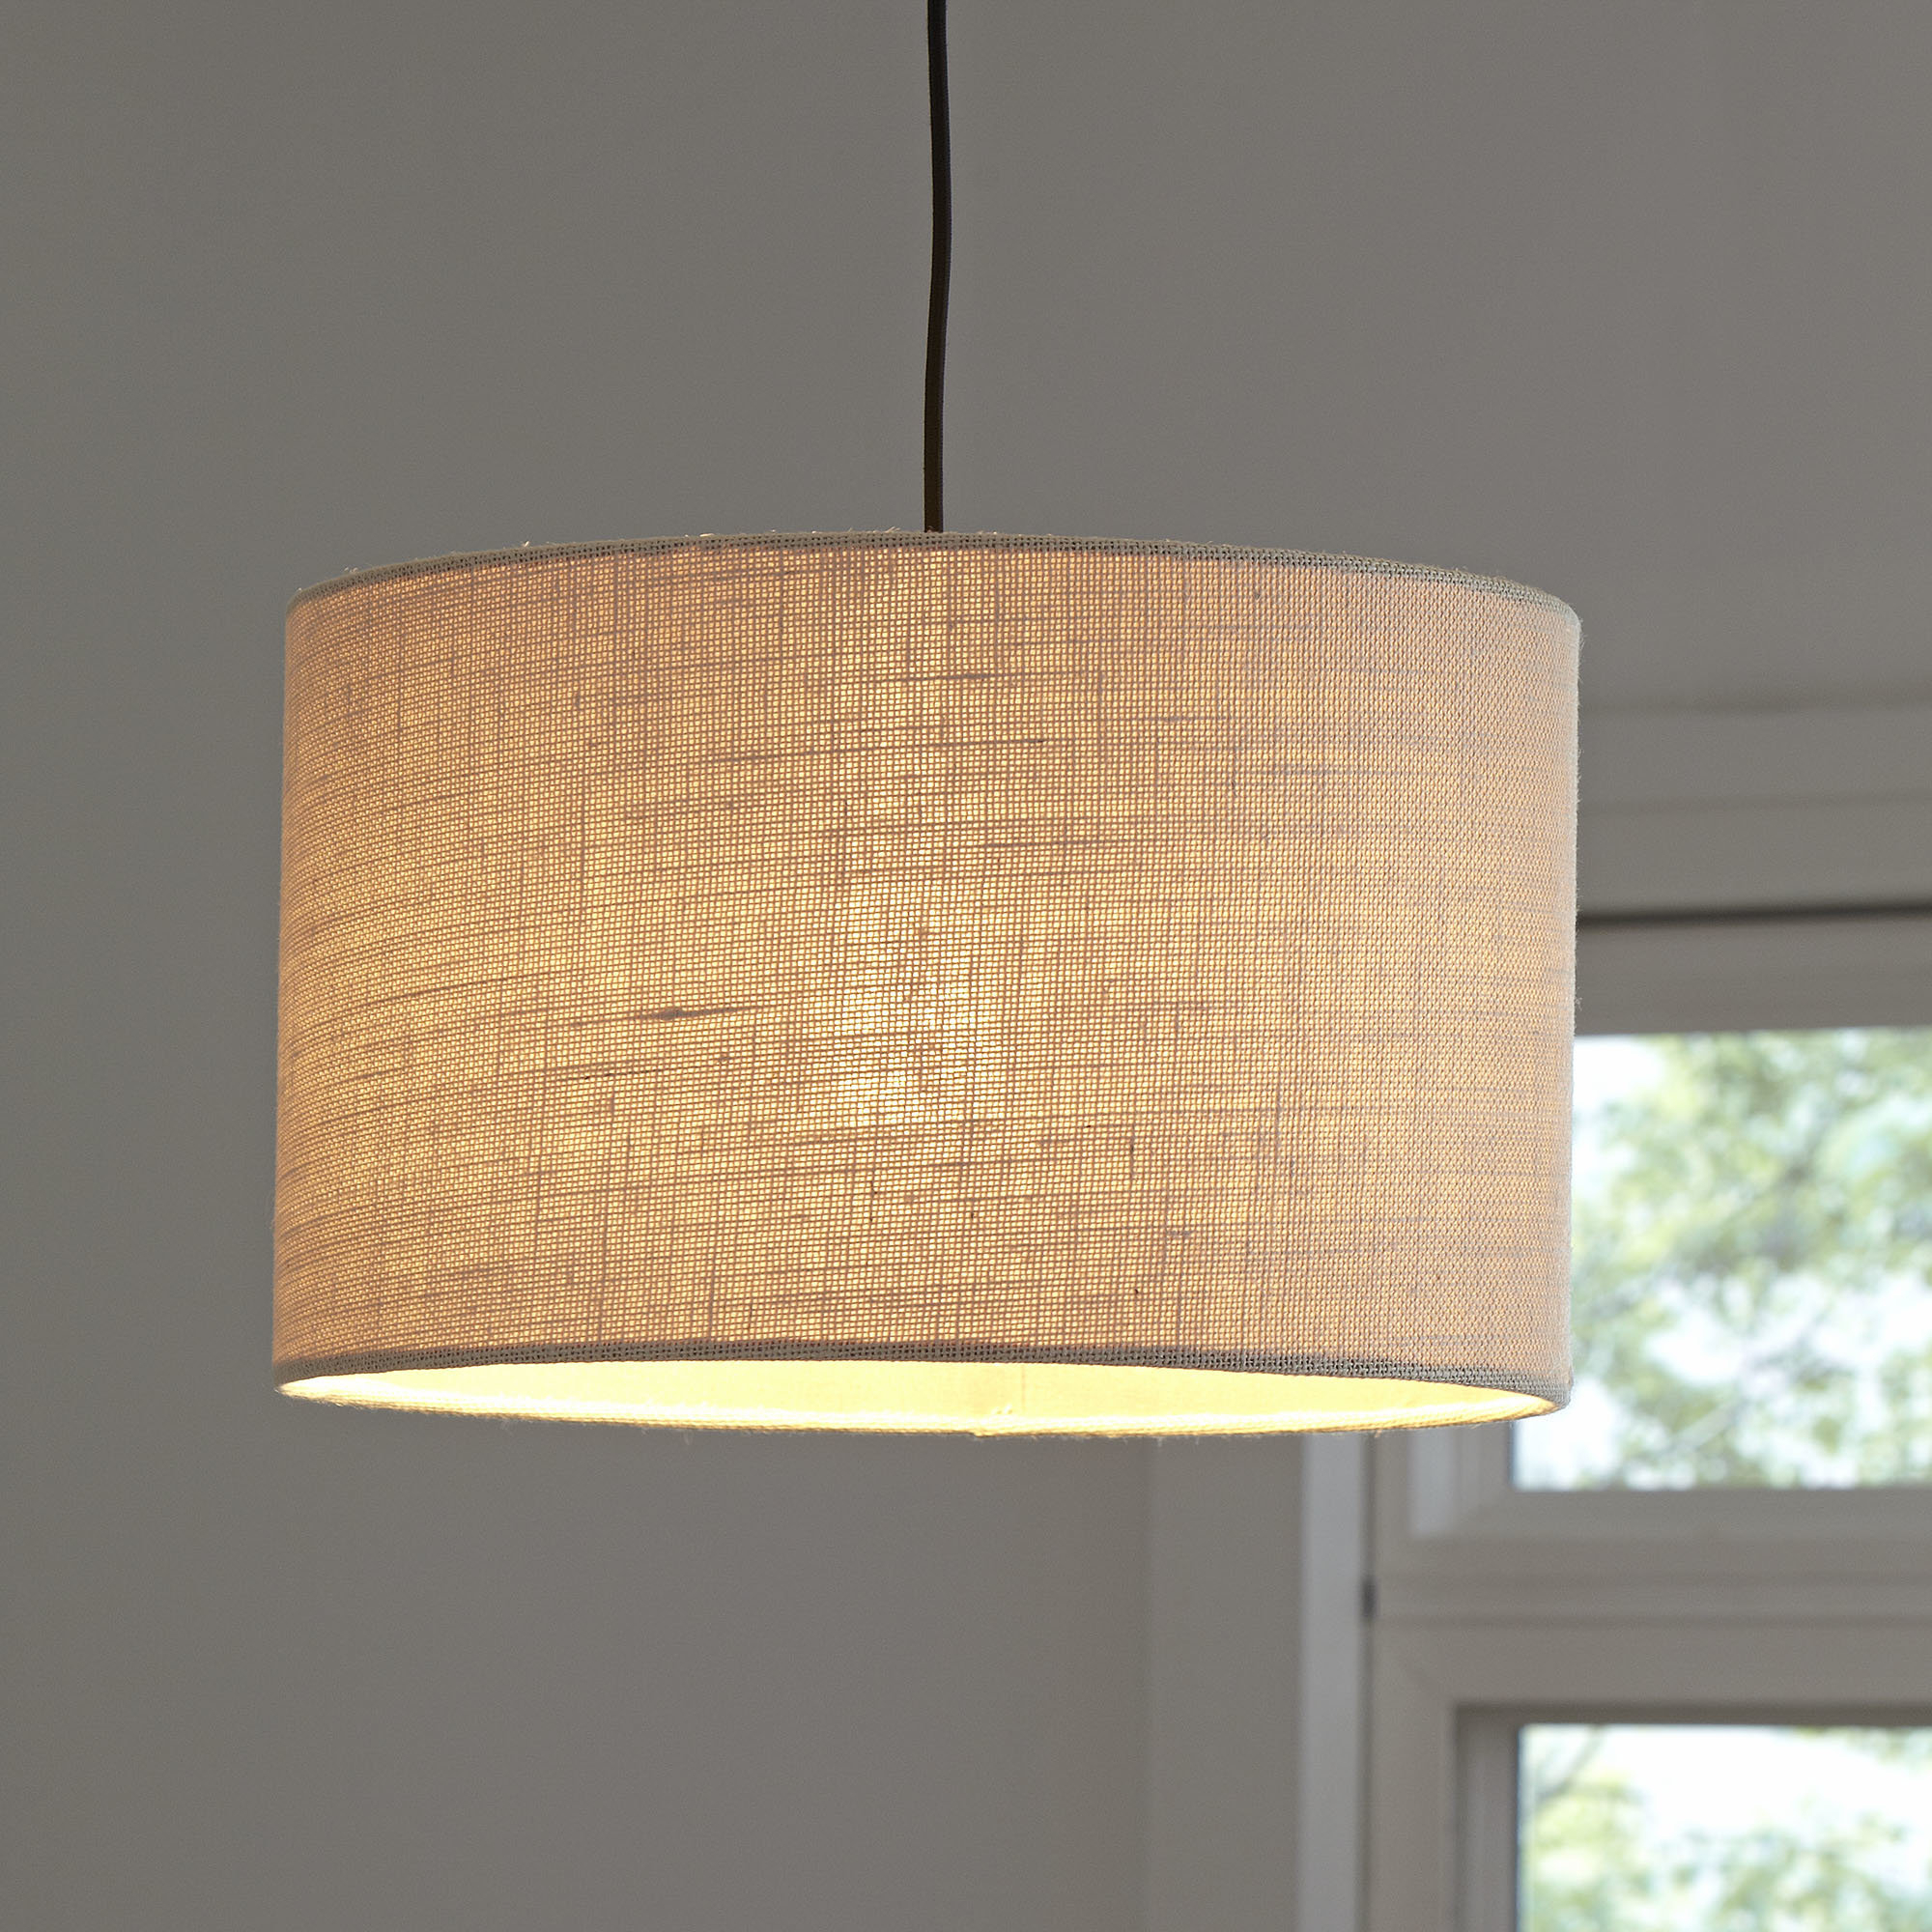 Kasey 3 Light Single Drum Pendants Regarding Well Known Spofford 1 Light Single Drum Pendant (Gallery 13 of 20)